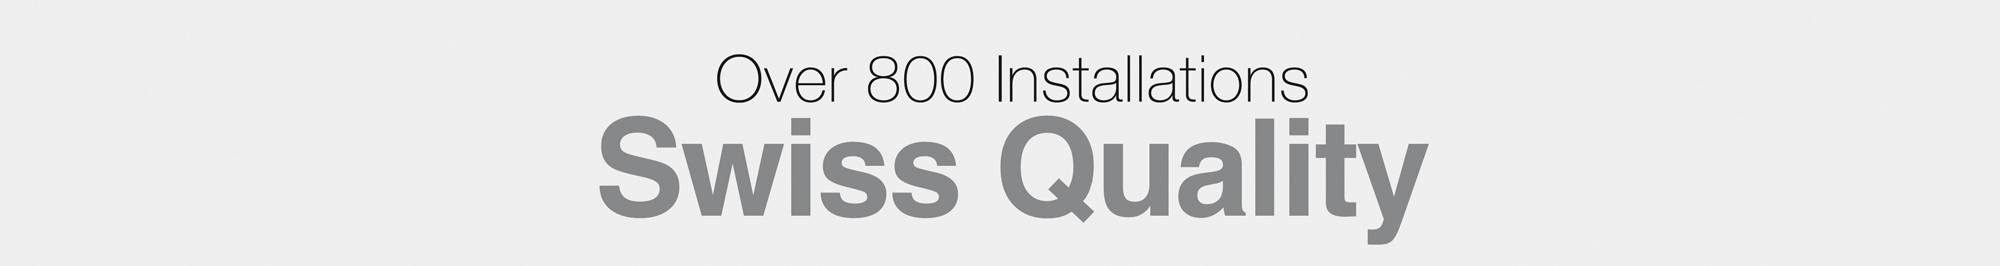 Over 800 Installations - Swiss Quality